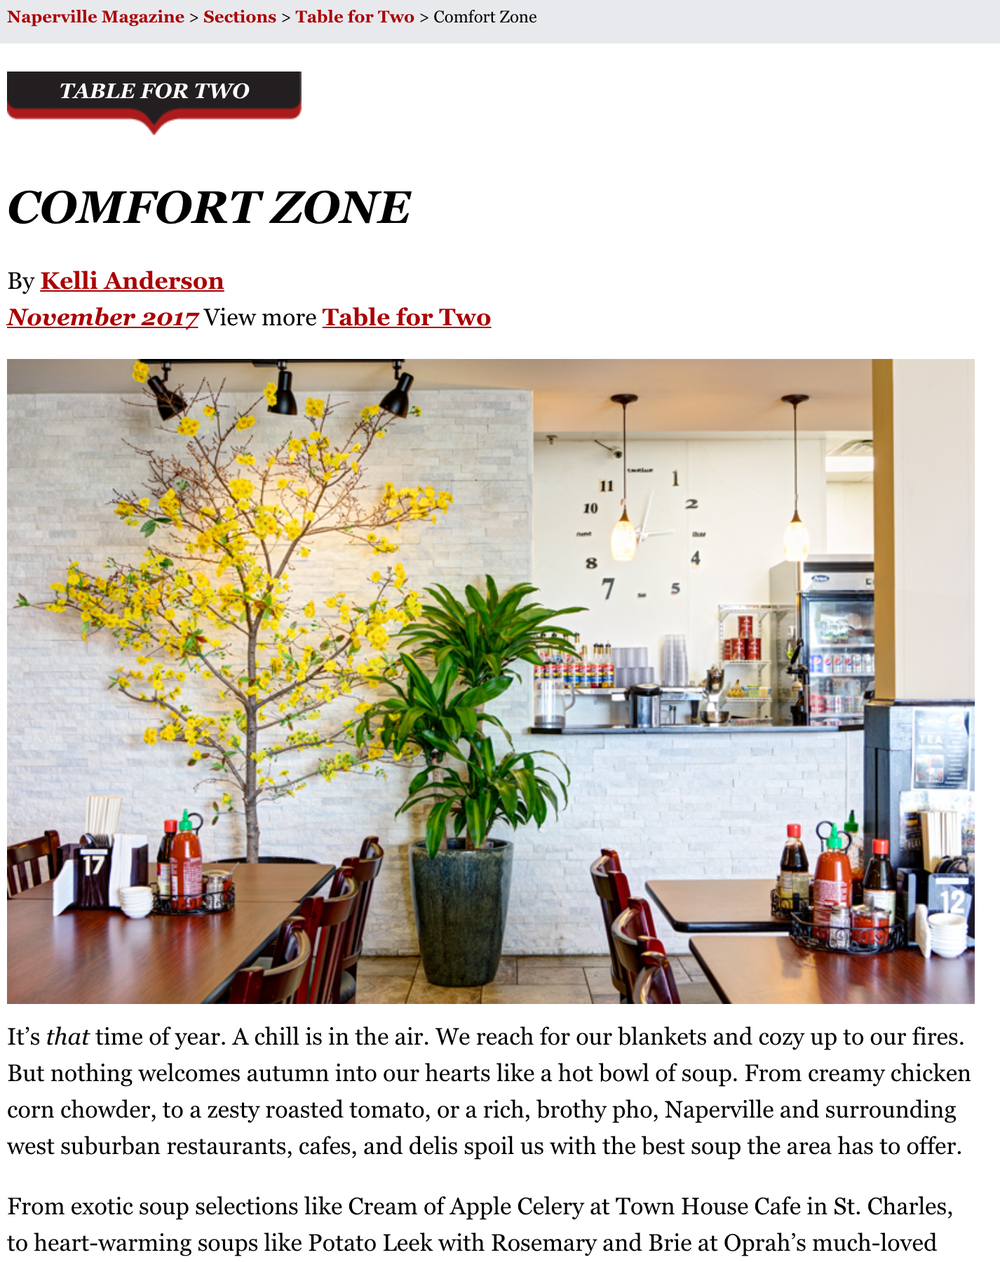 Comfort_Zone_-_Naperville_Magazine.png